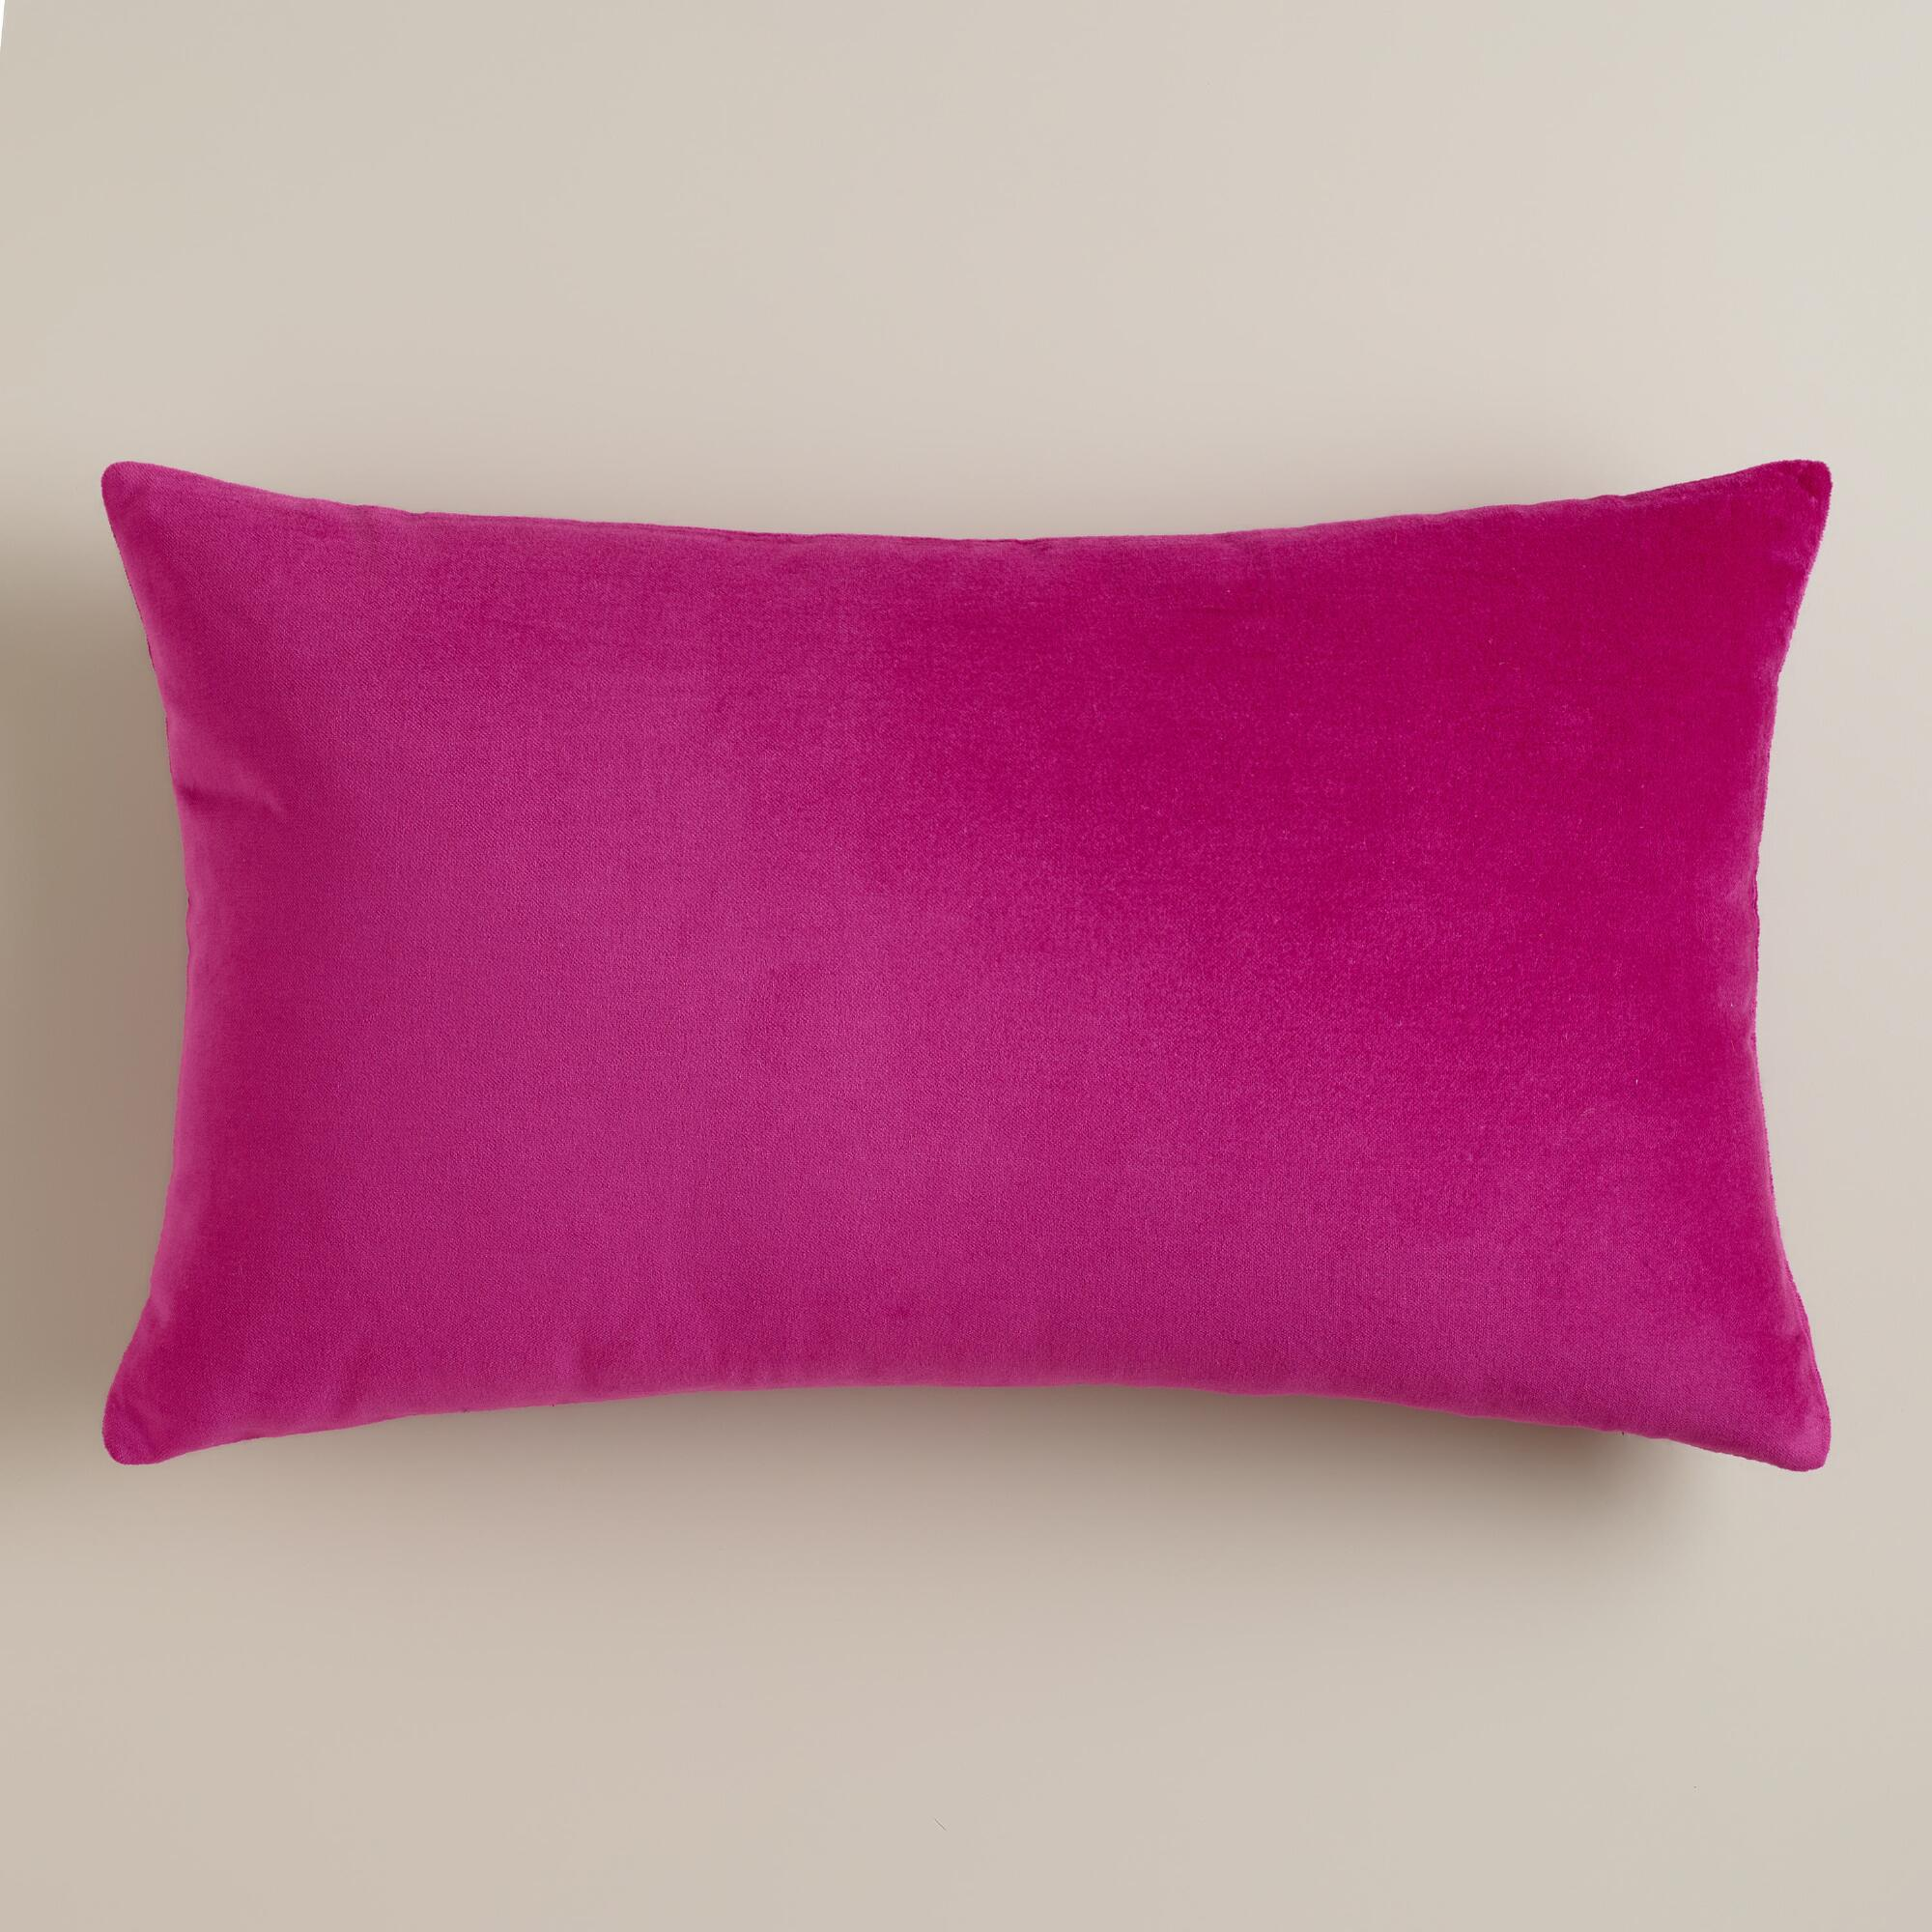 Fuschia Velvet Throw Pillows : Fuchsia Velvet Lumbar Pillow World Market